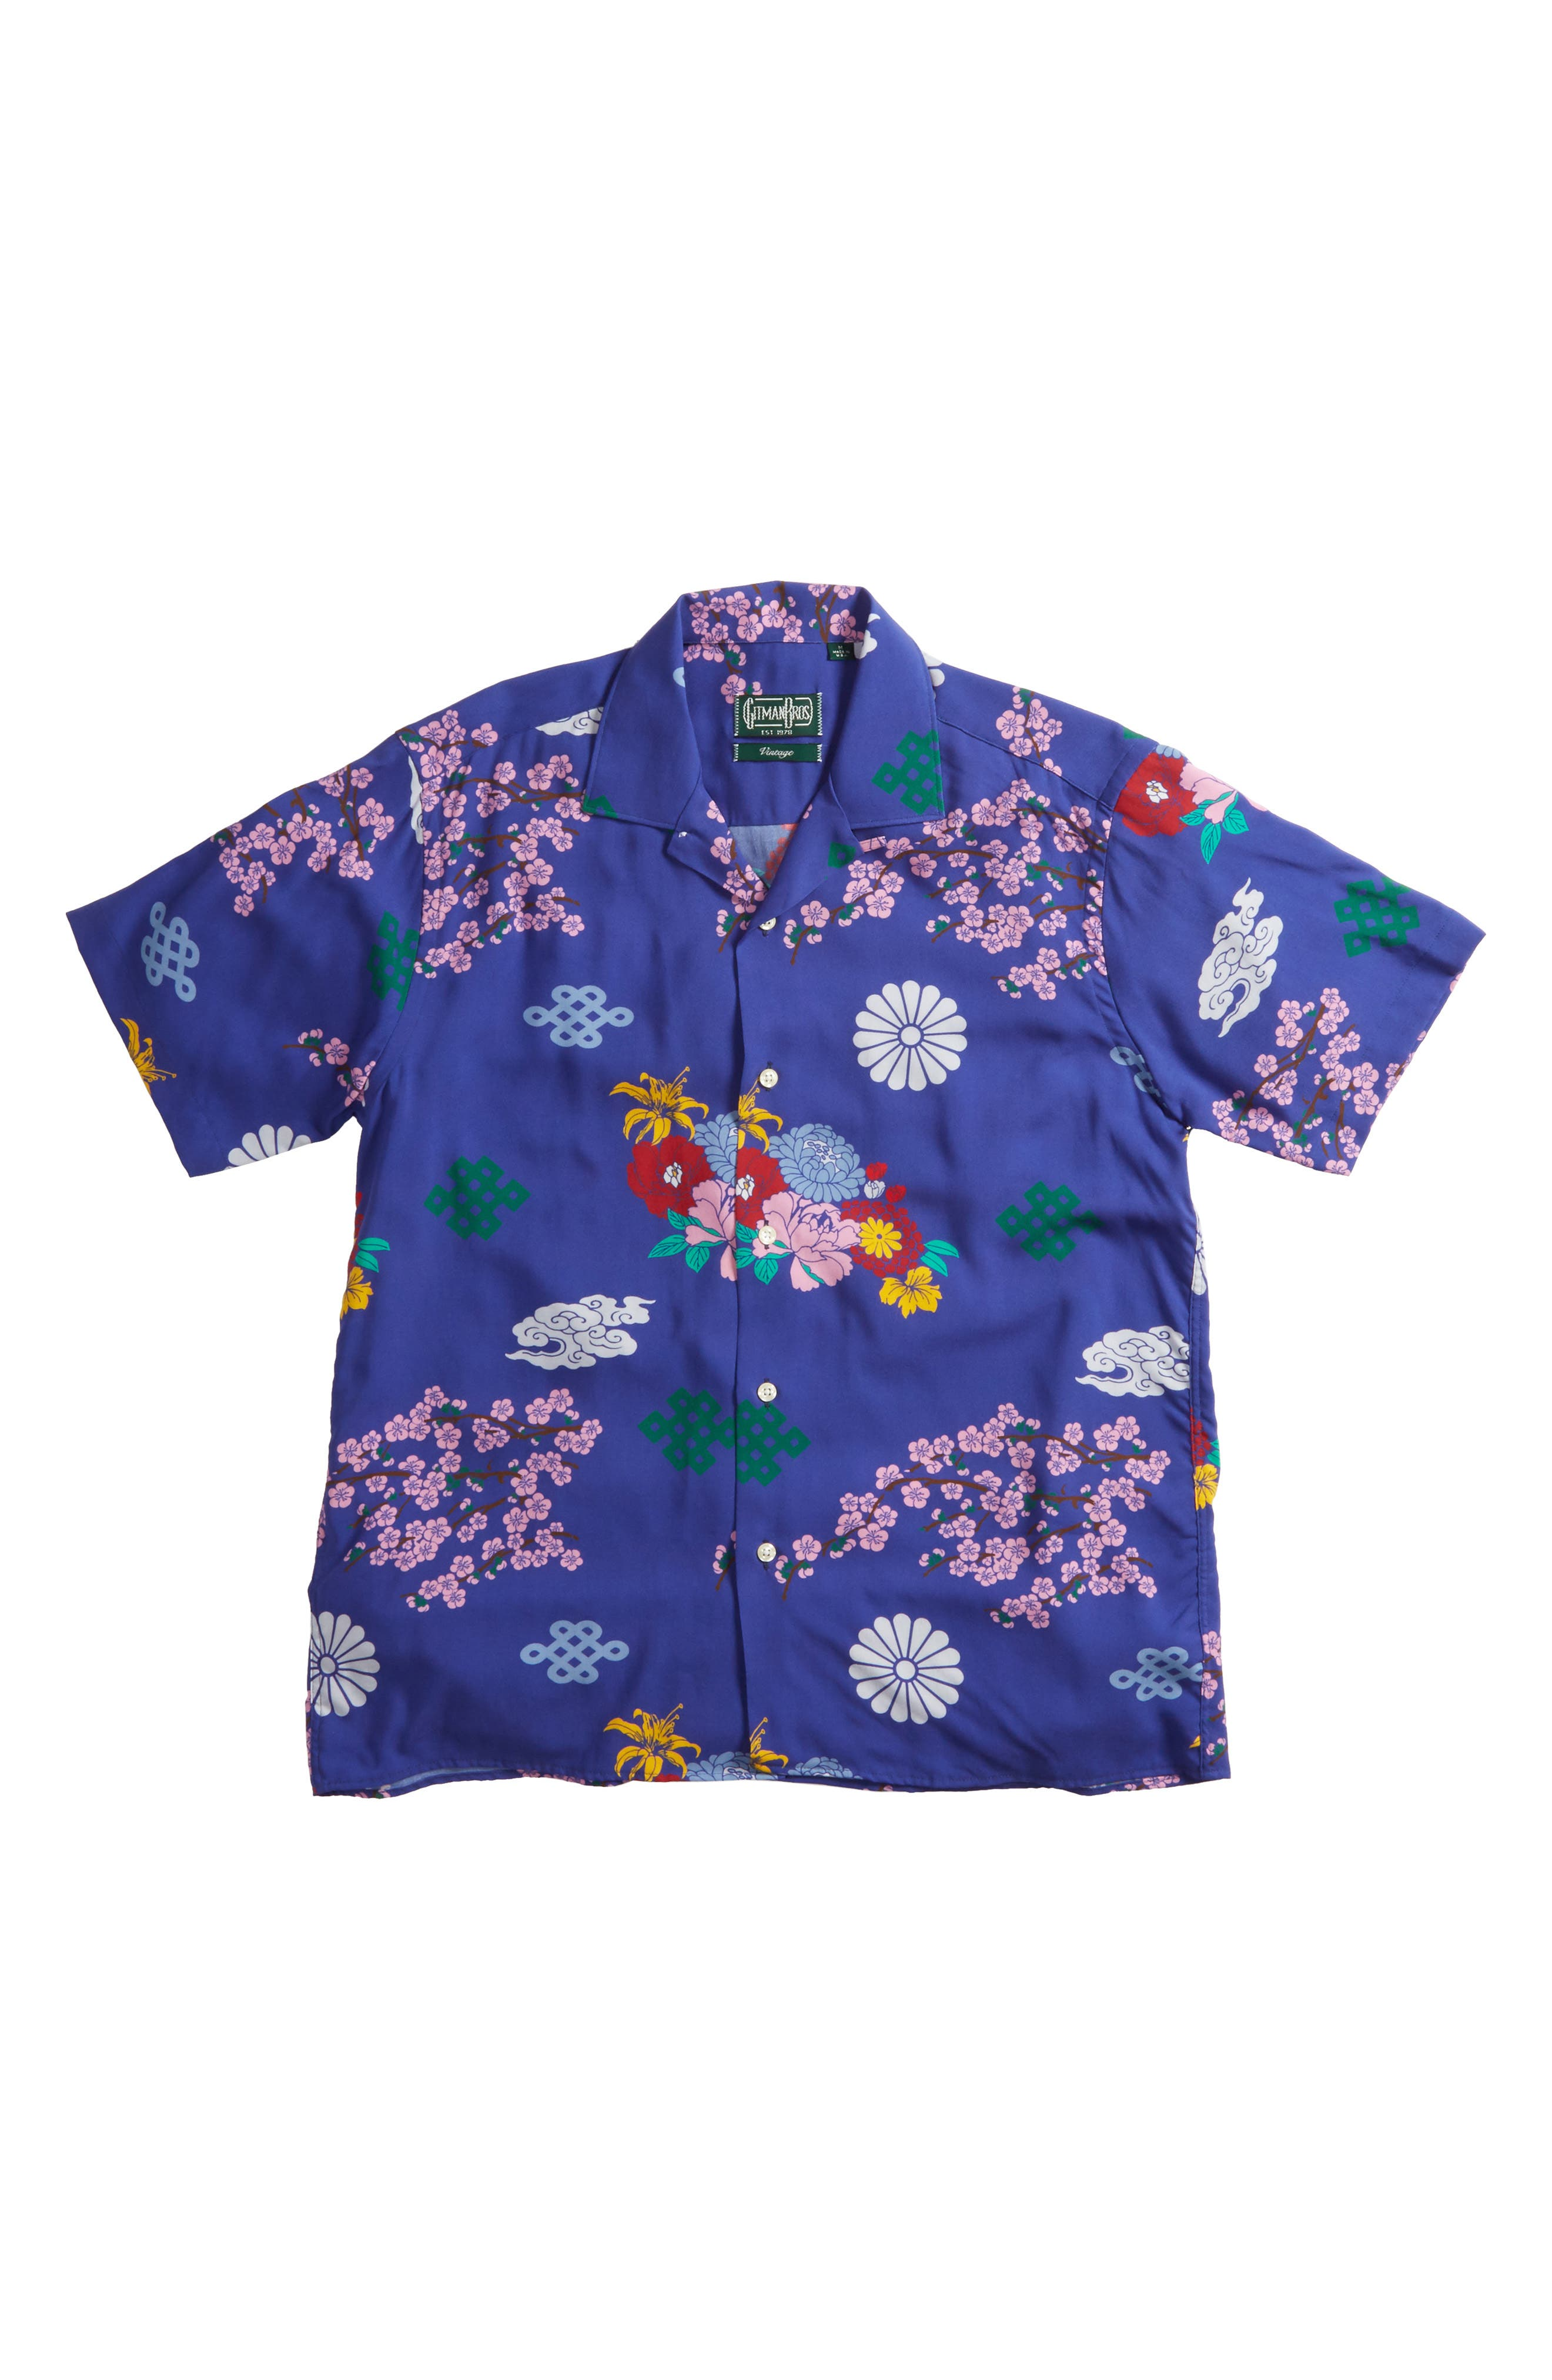 Alternate Image 1 Selected - Gitman x The North Face Men's Floral Print Camp Shirt (Limited Edition)